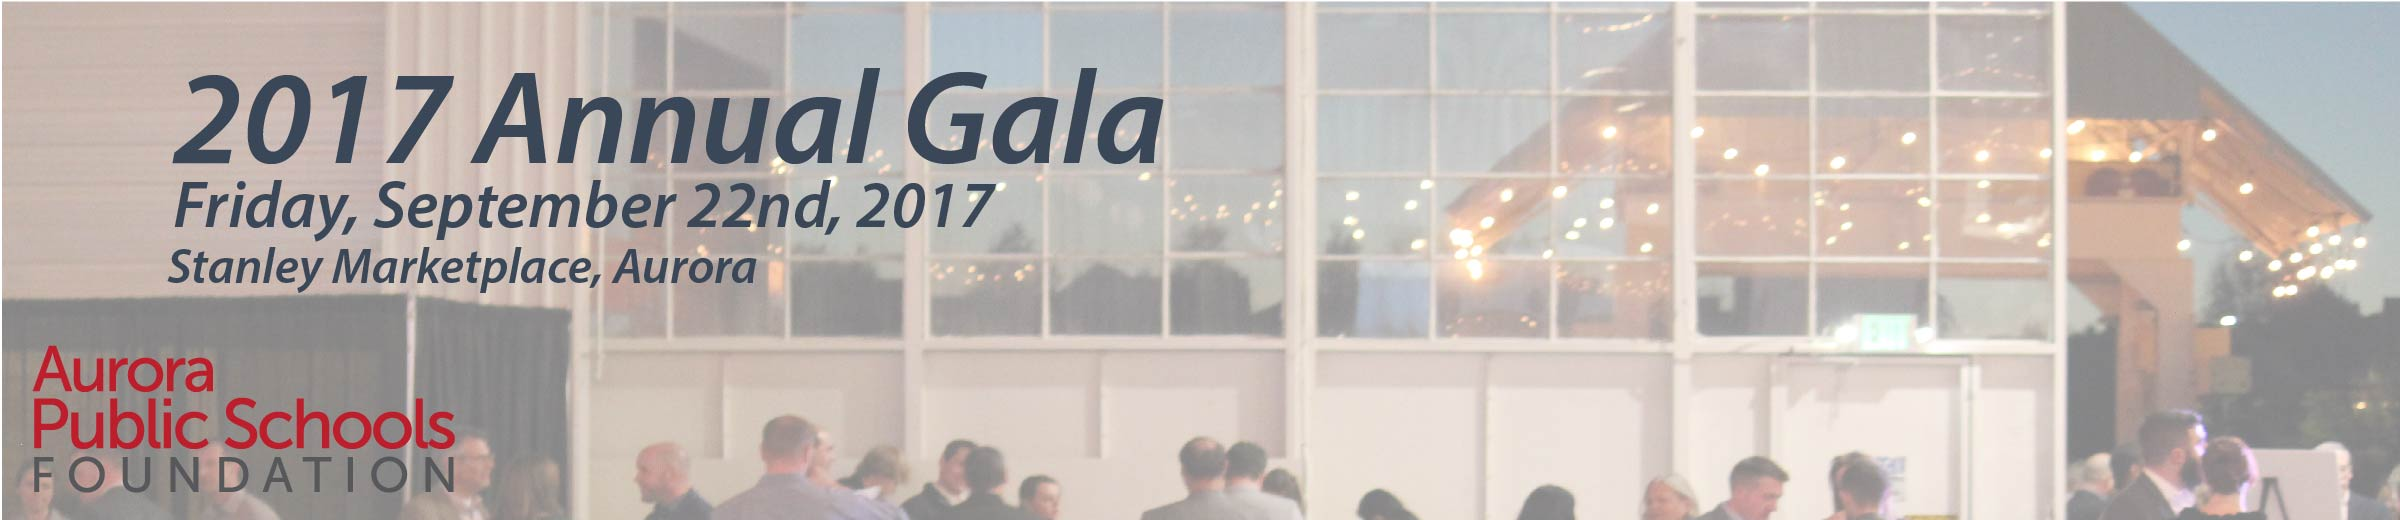 June 2017 Gala Web Asset-01-01